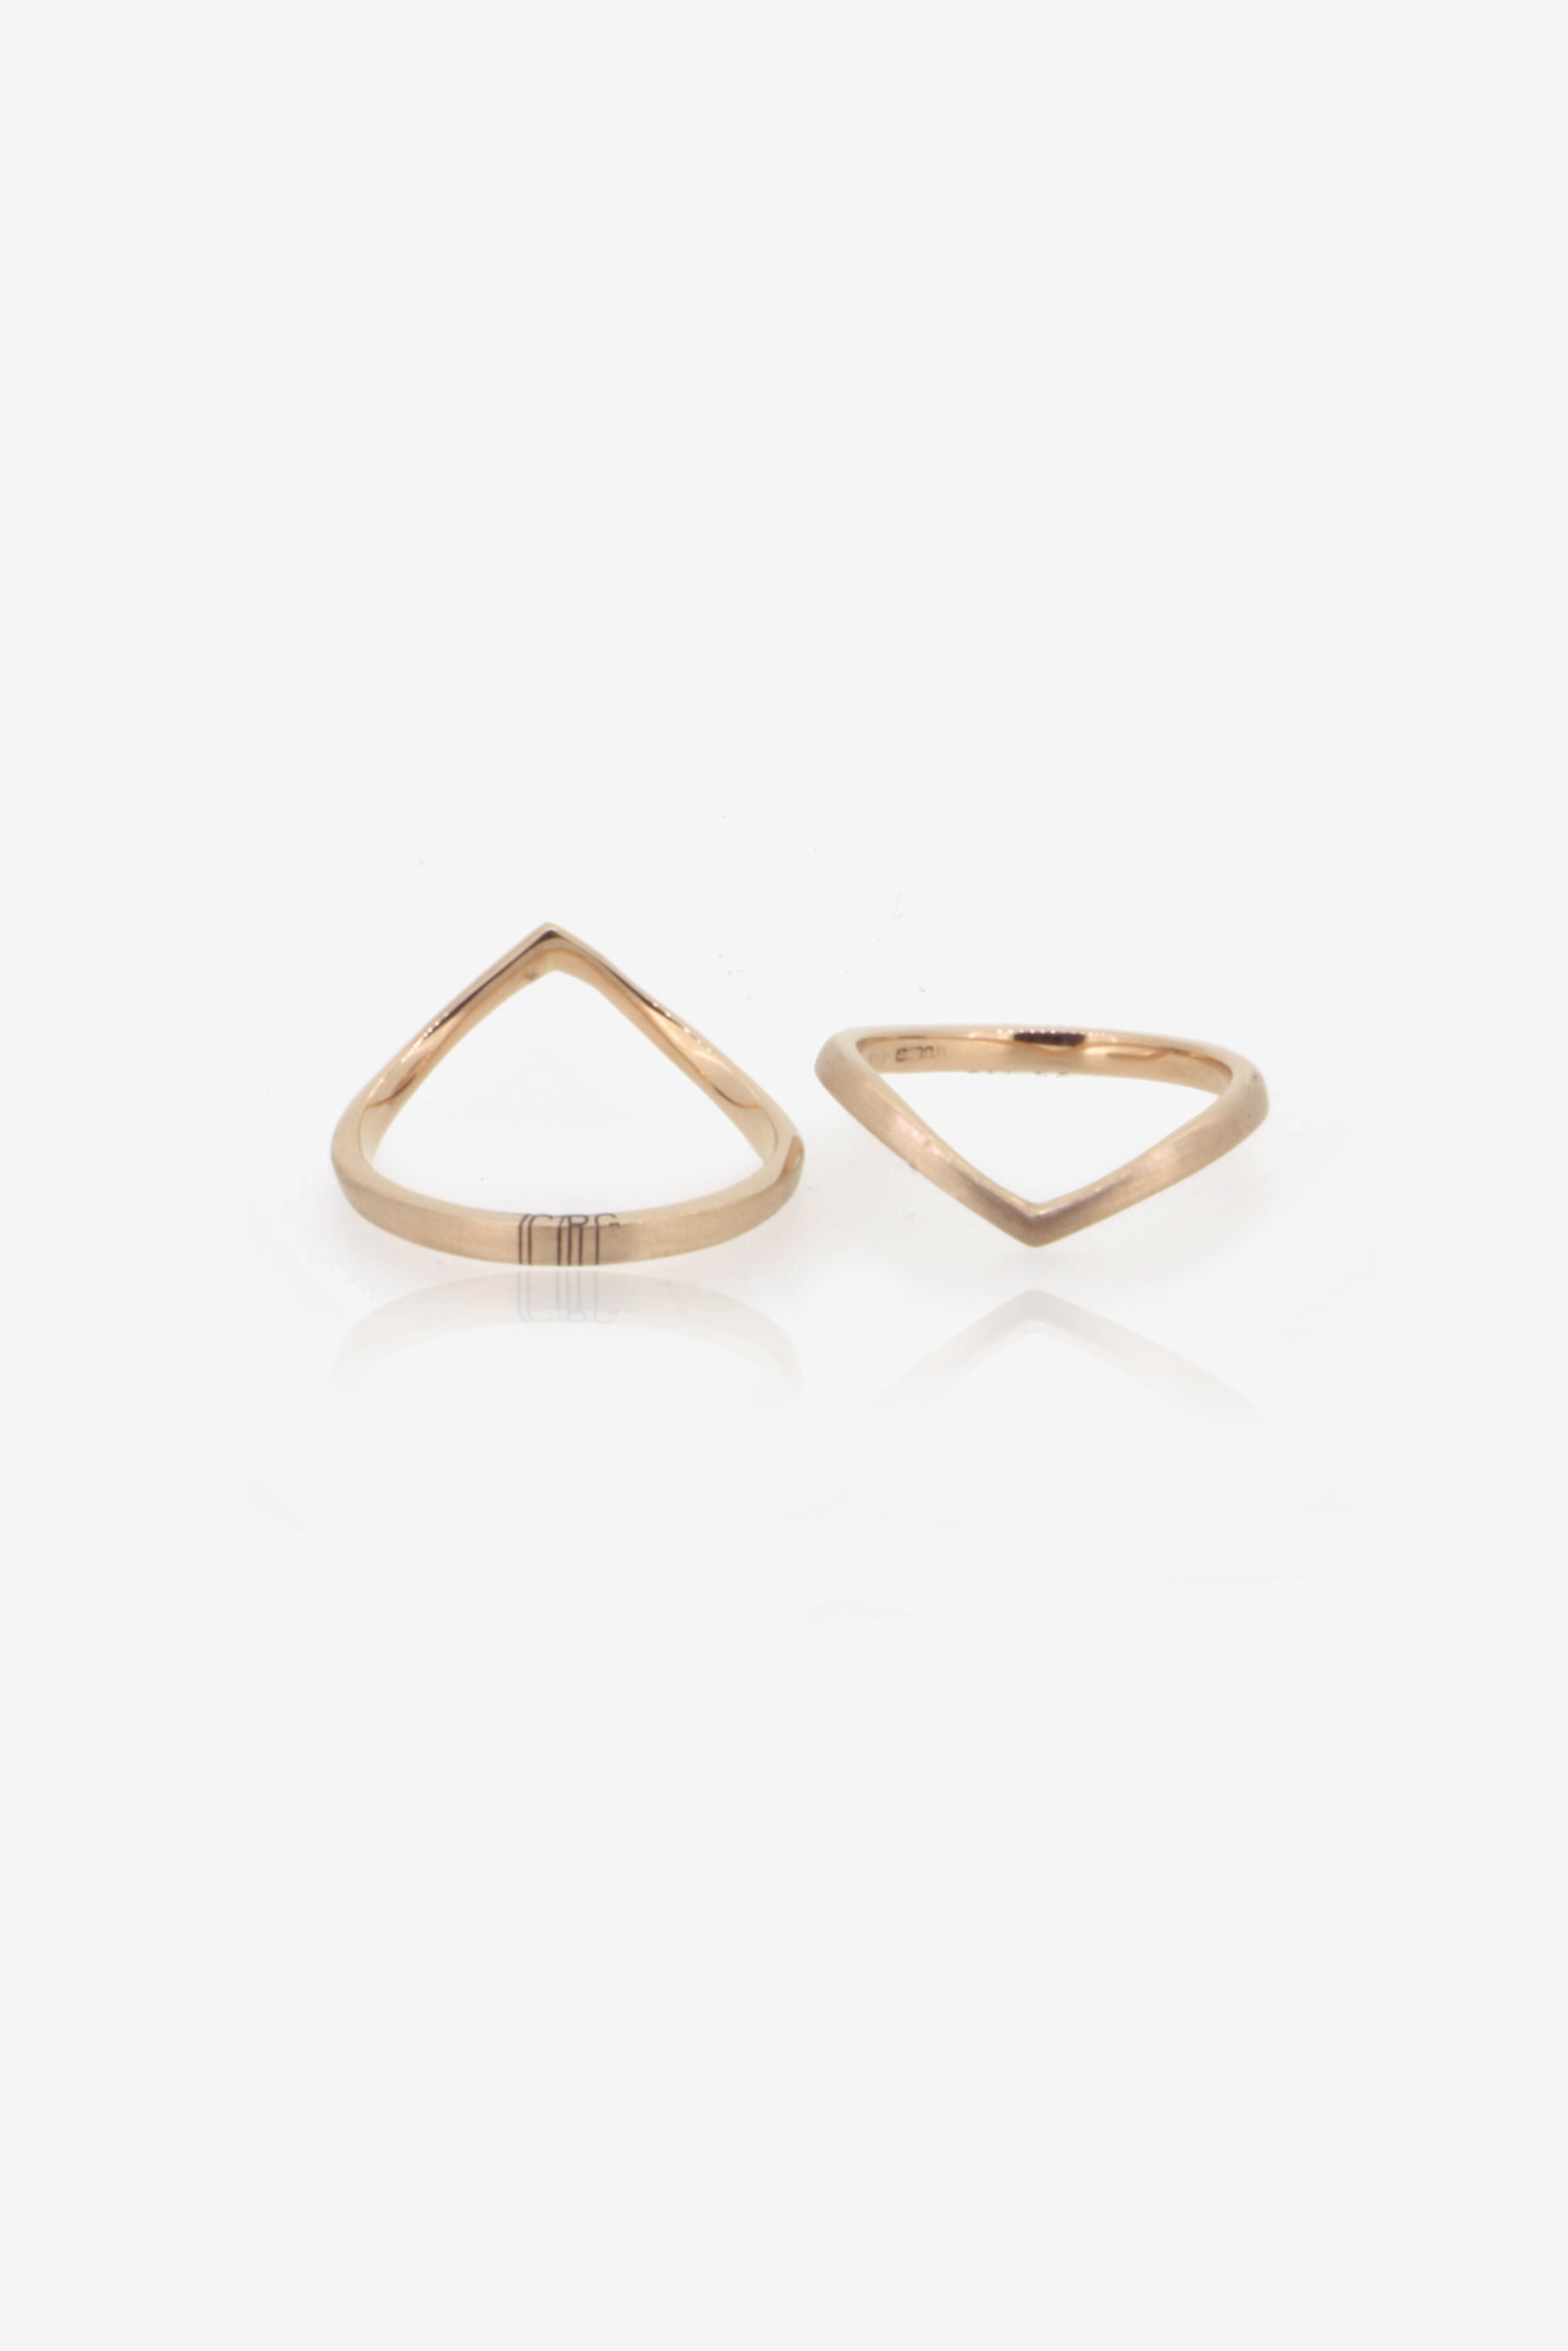 Fairtrade Rose gold pair of engagement rings